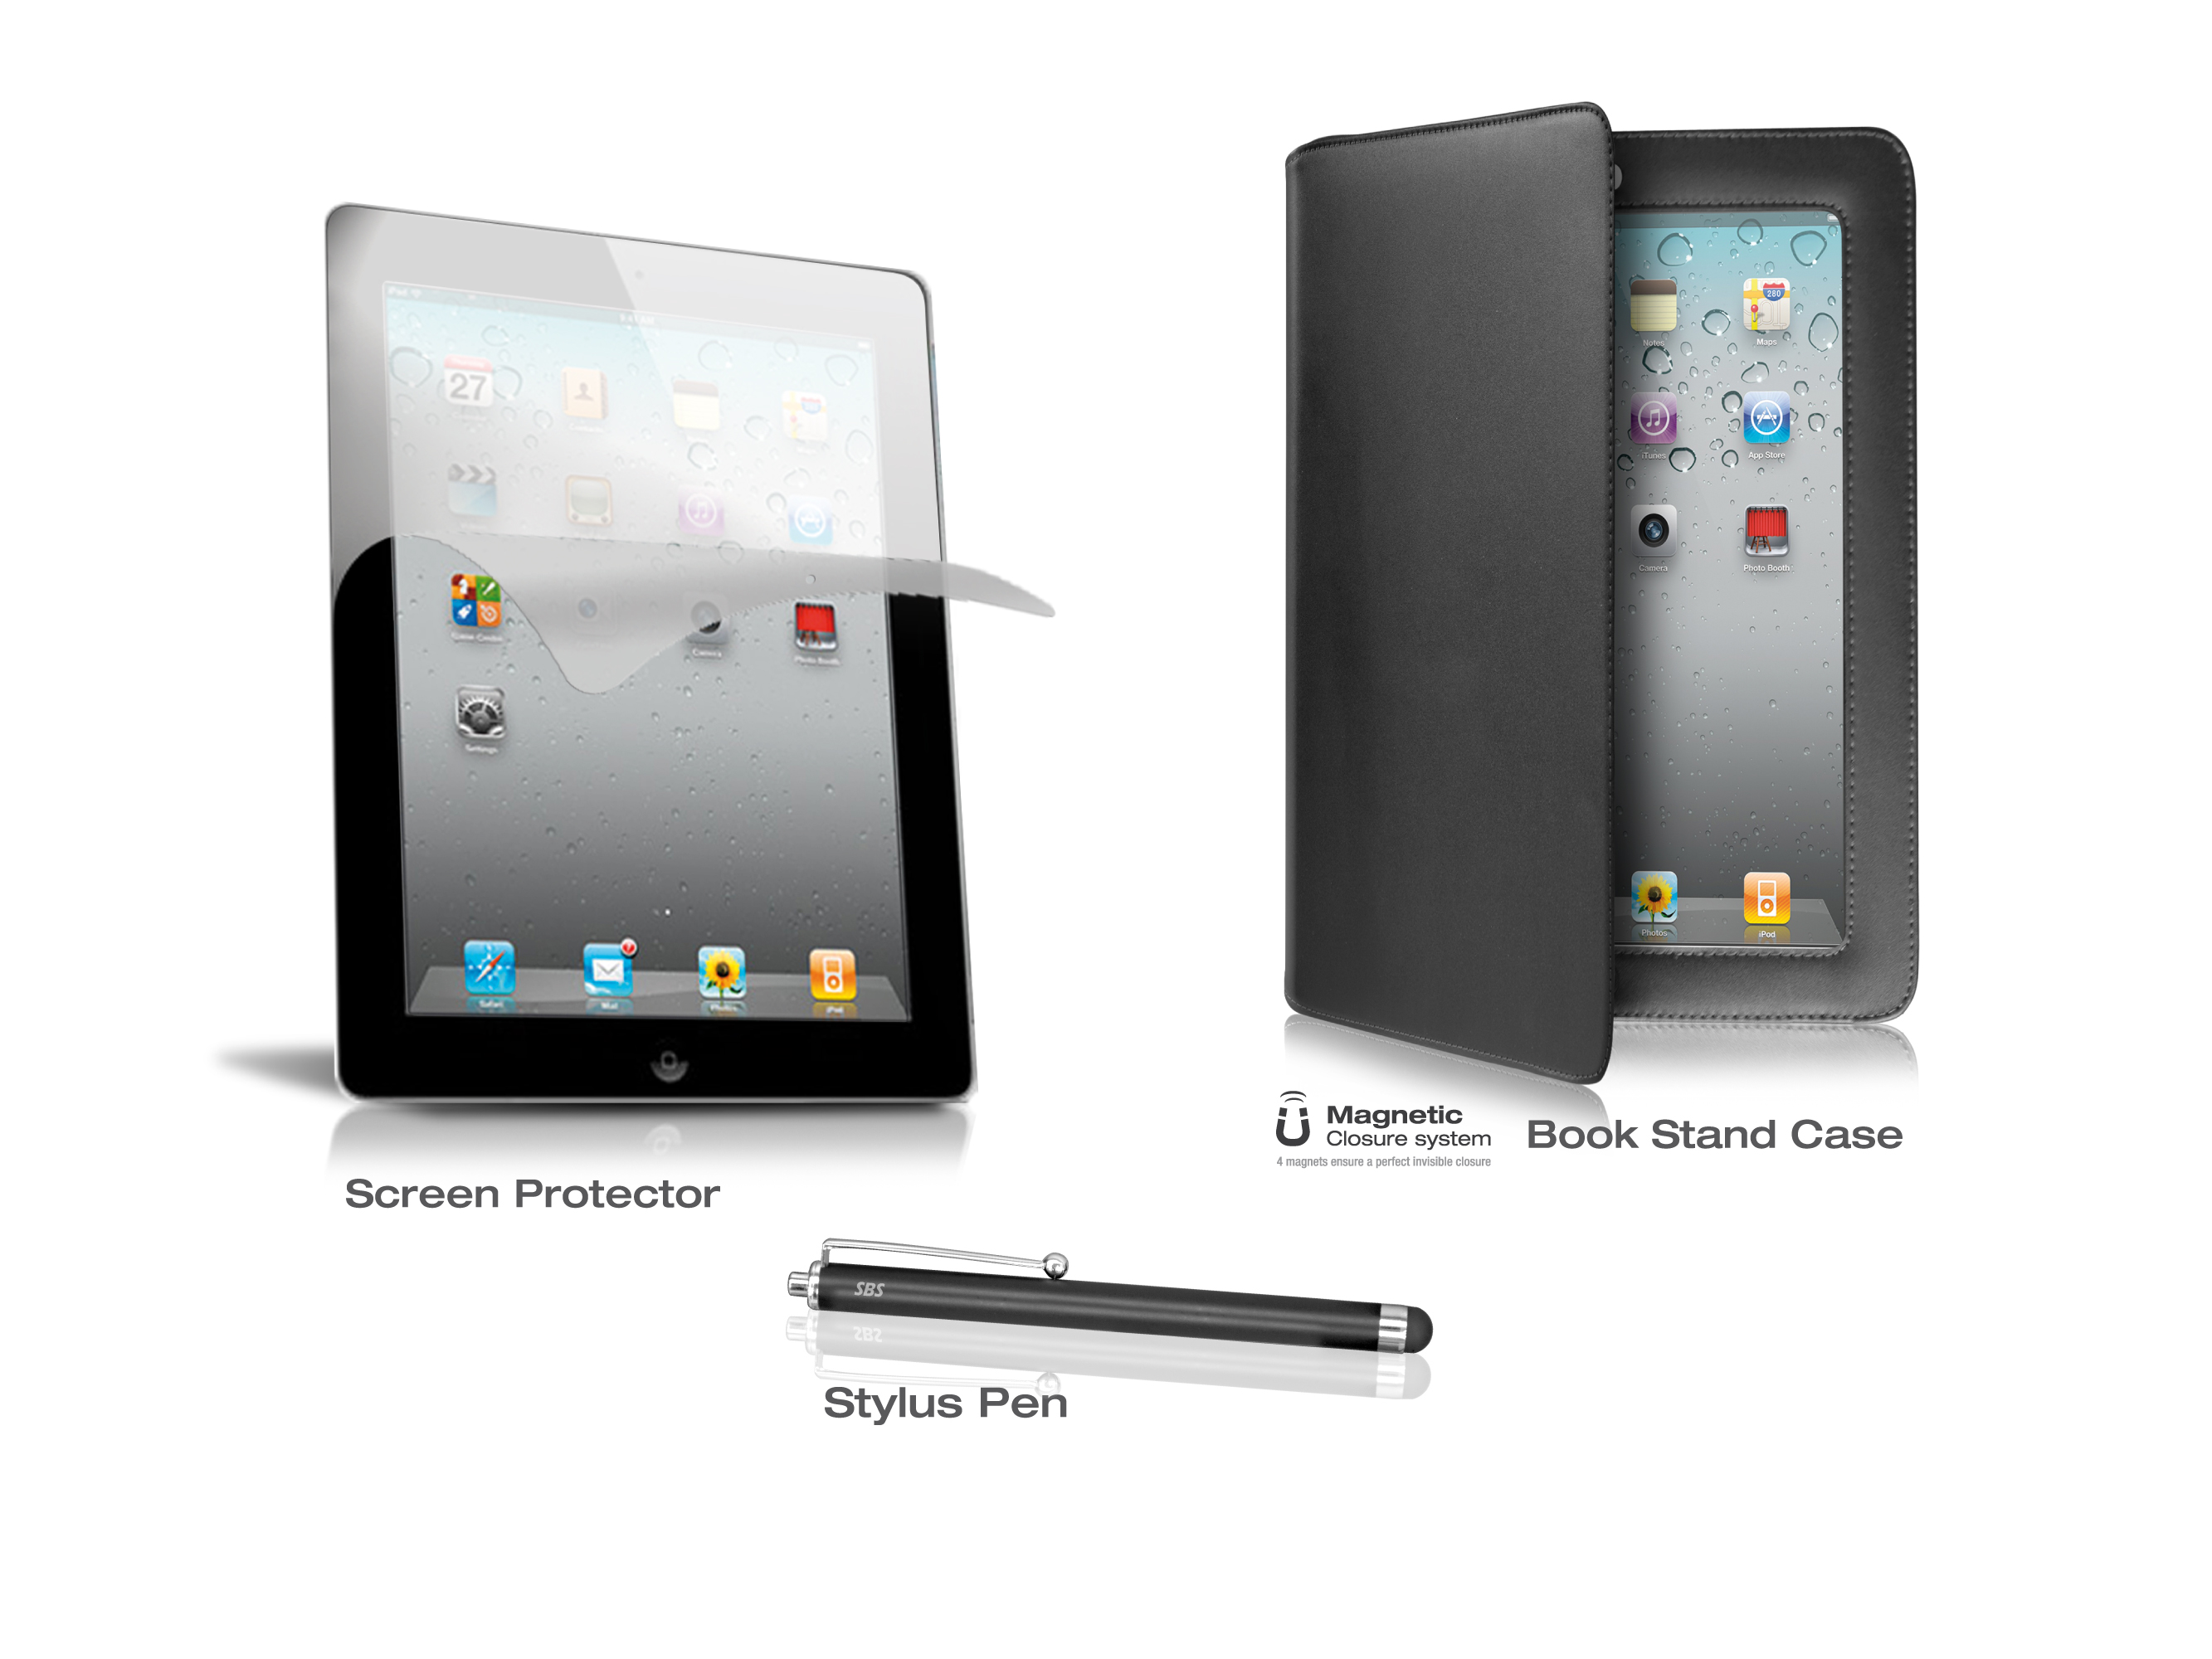 Kit 3 in 1 for iPad